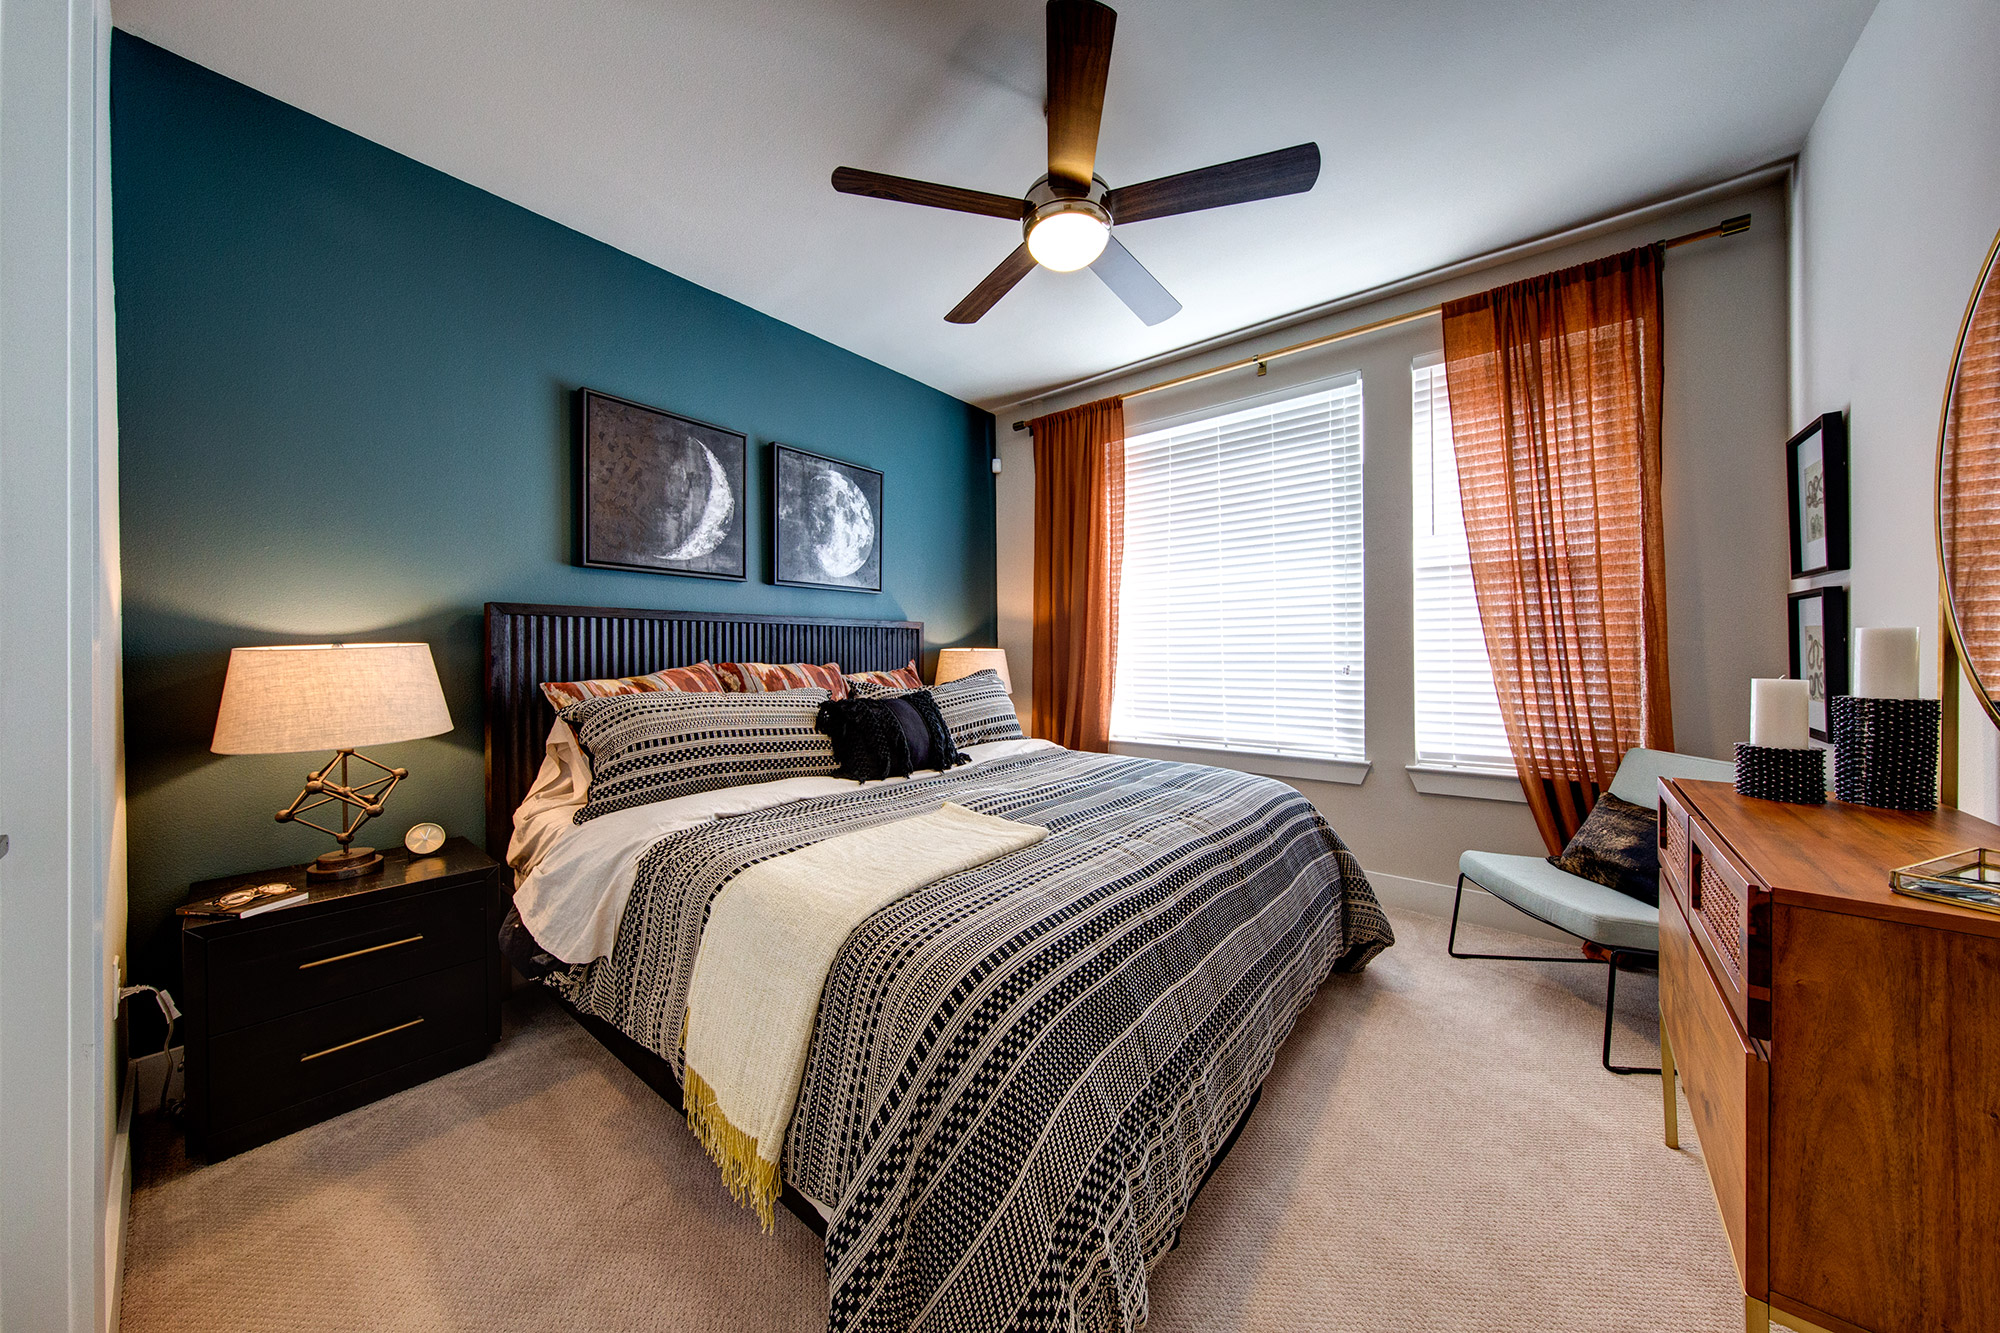 Bedroom with large windows, plush carpeting, ceiling fan, accent wall and modern bedroom furniture.